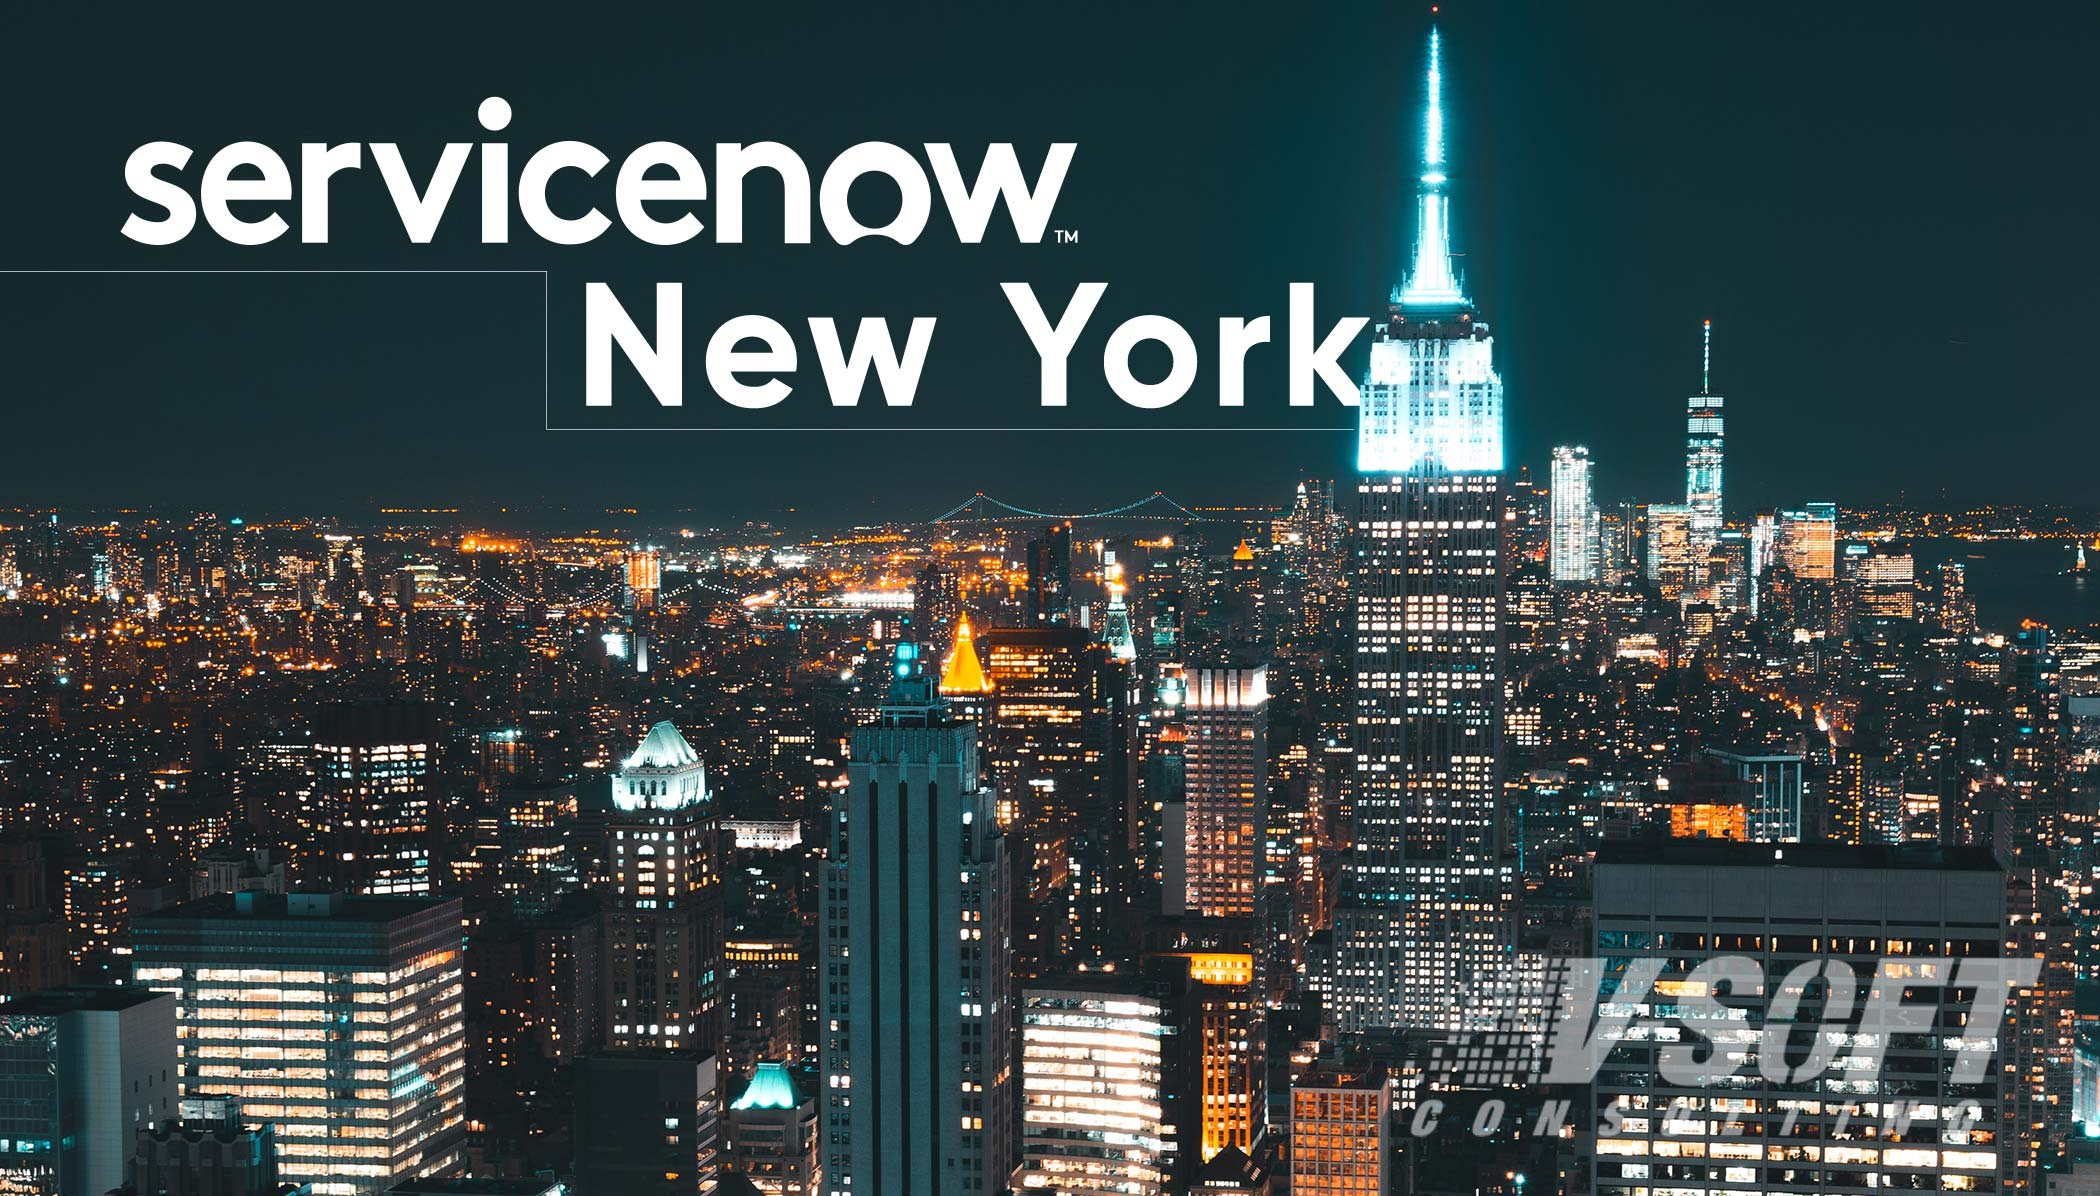 Explore the ServiceNow New York New Features